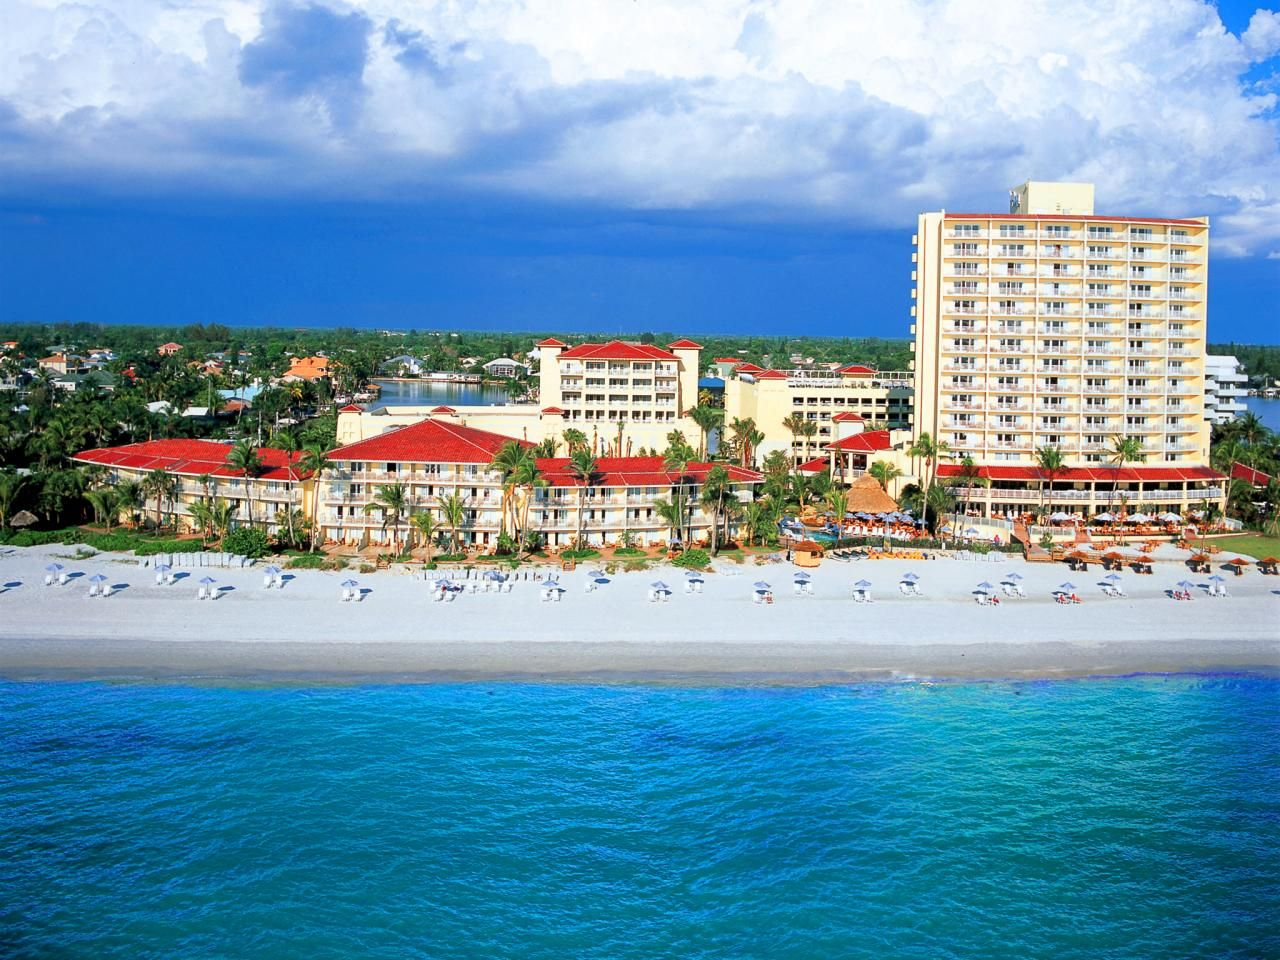 Florida 39 s best beachfront hotels florida travelchannel for Best beach vacations usa